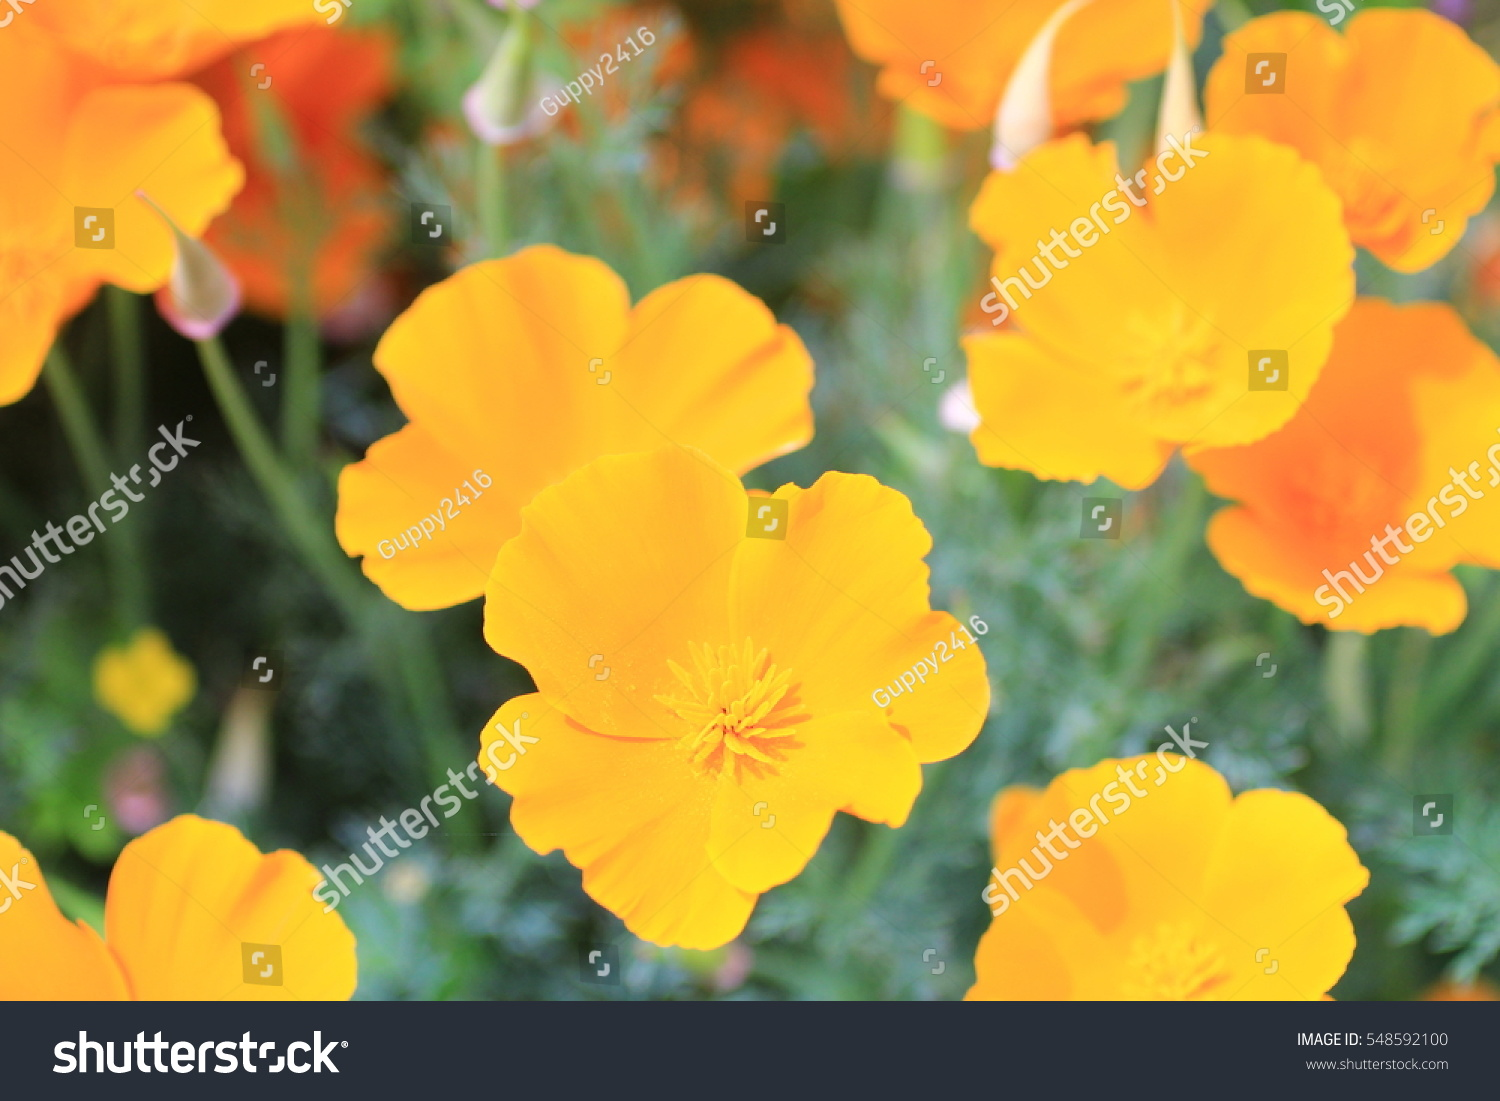 Poppy Blooming On Field Wild Poppies Flowers Poppies In Nature